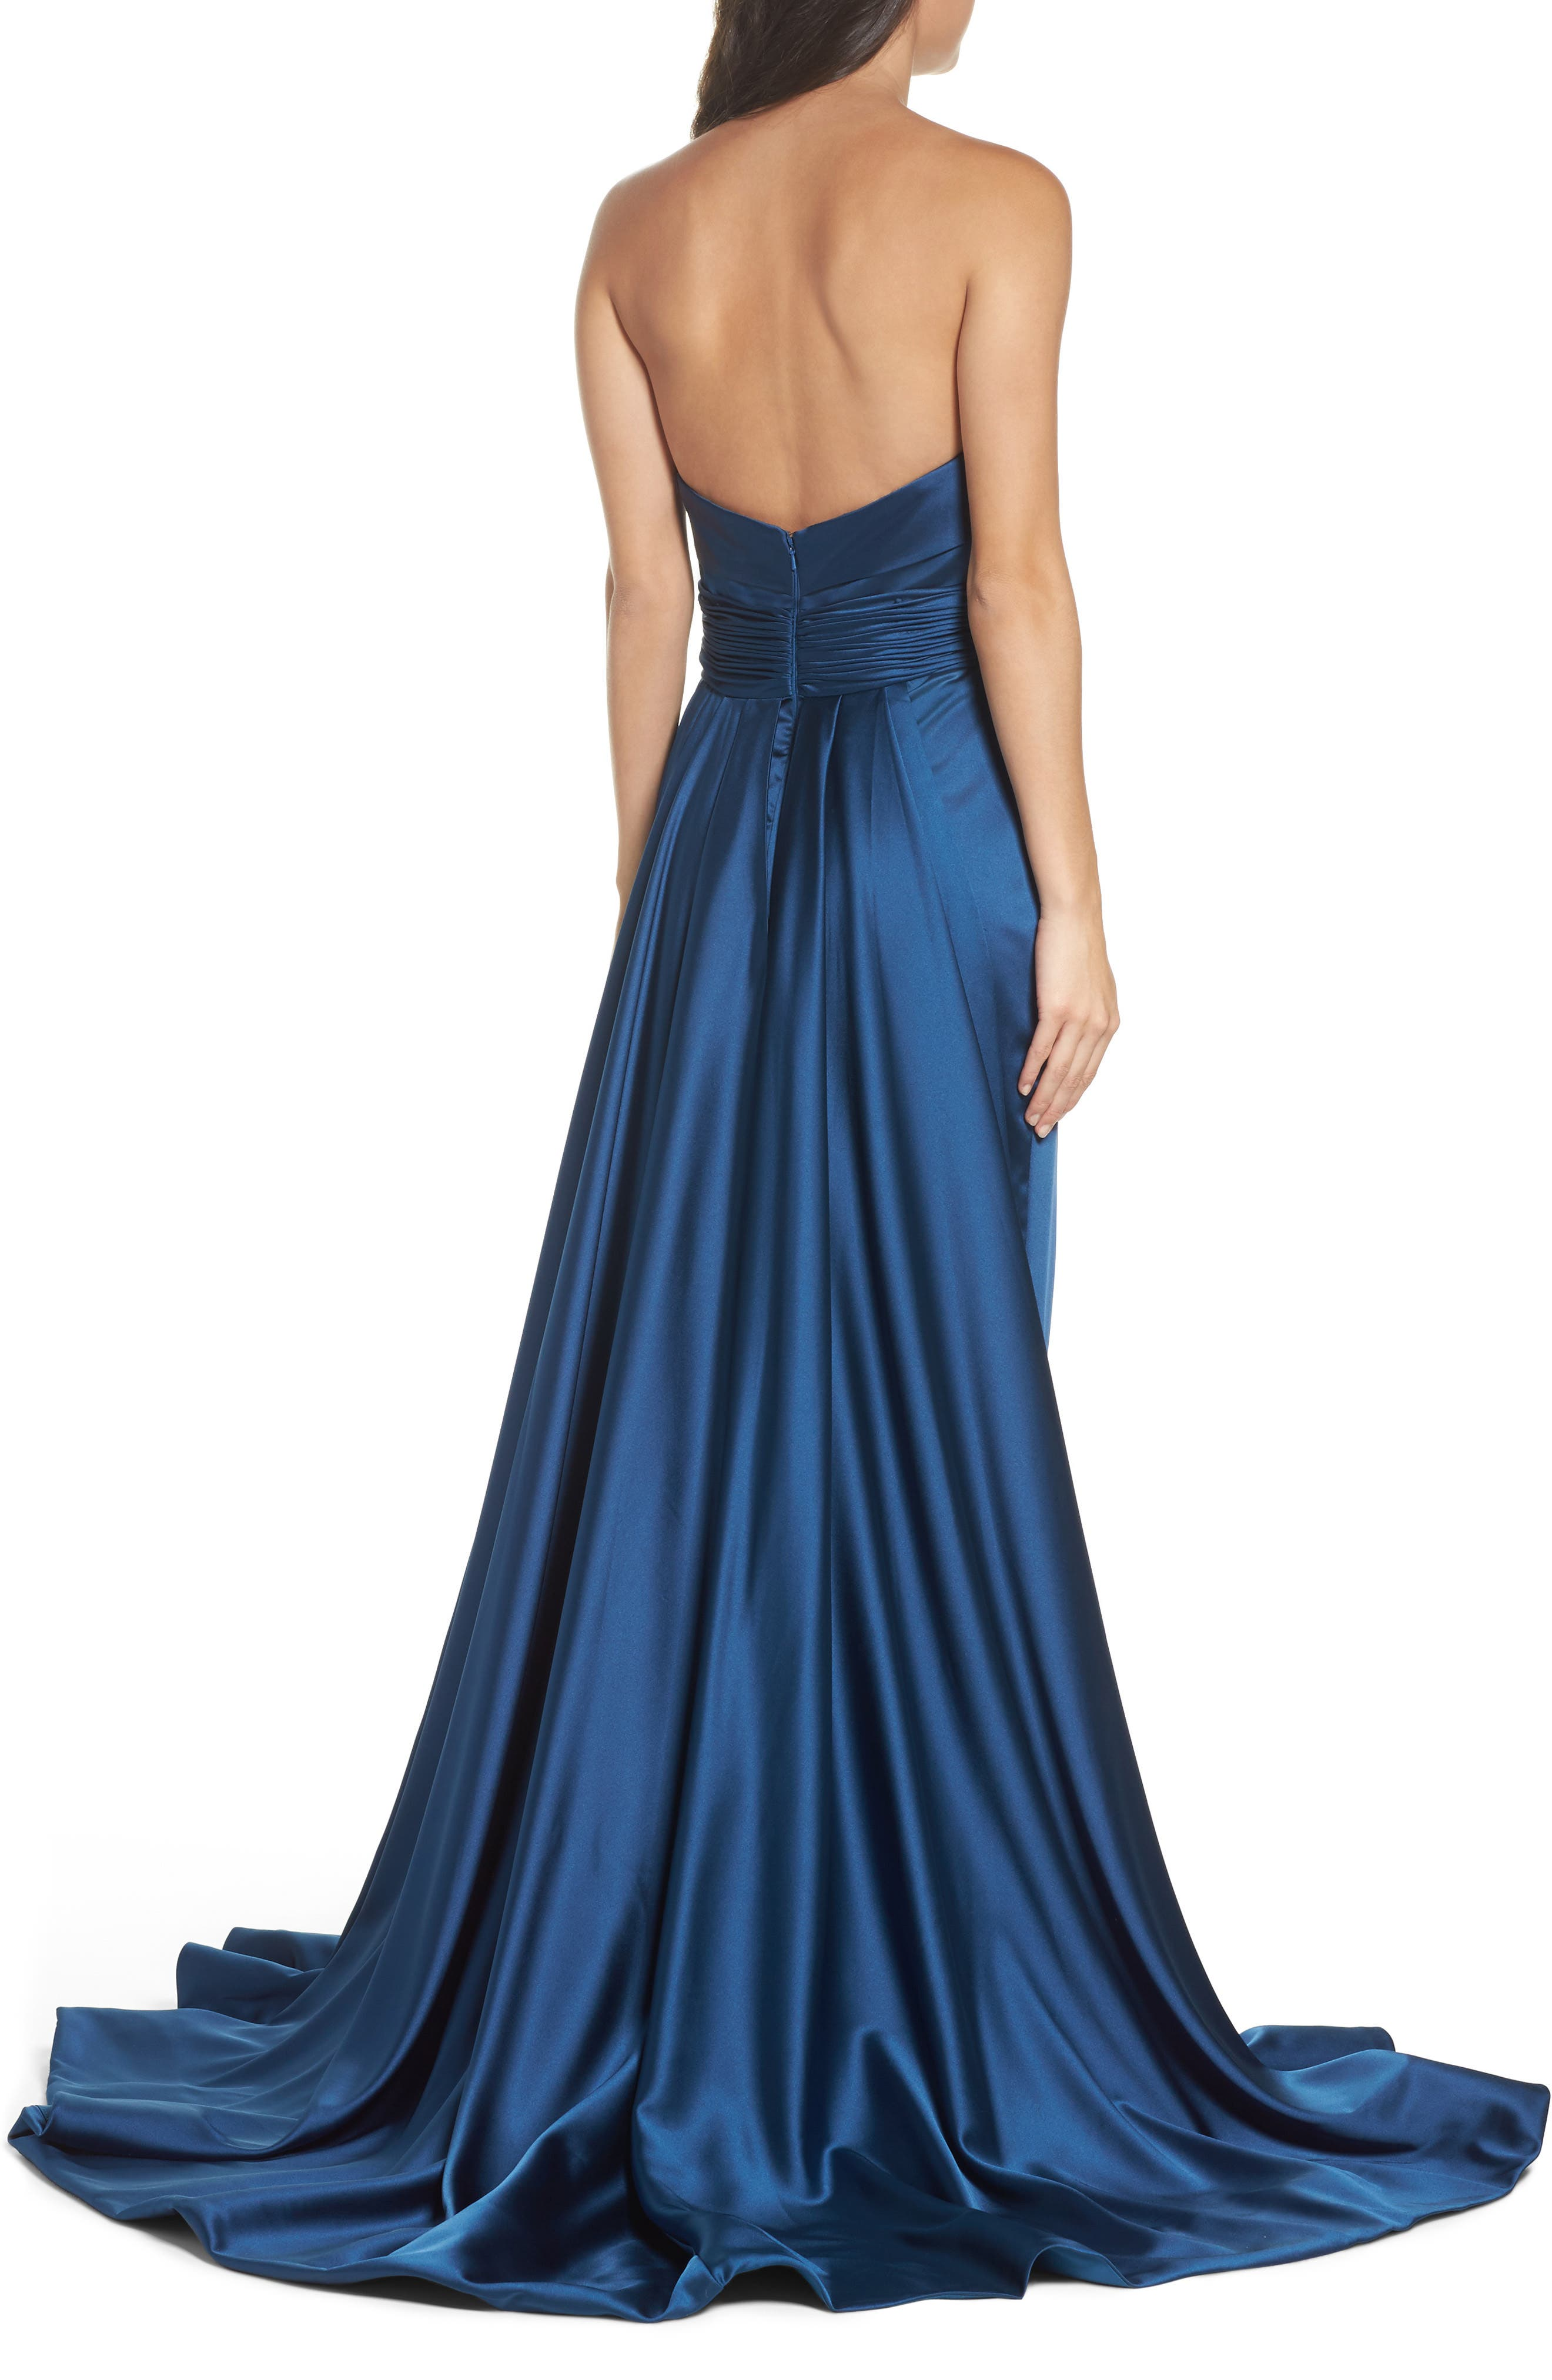 Alternate Image 2  - Mac Duggal Ruched Strapless Satin Gown